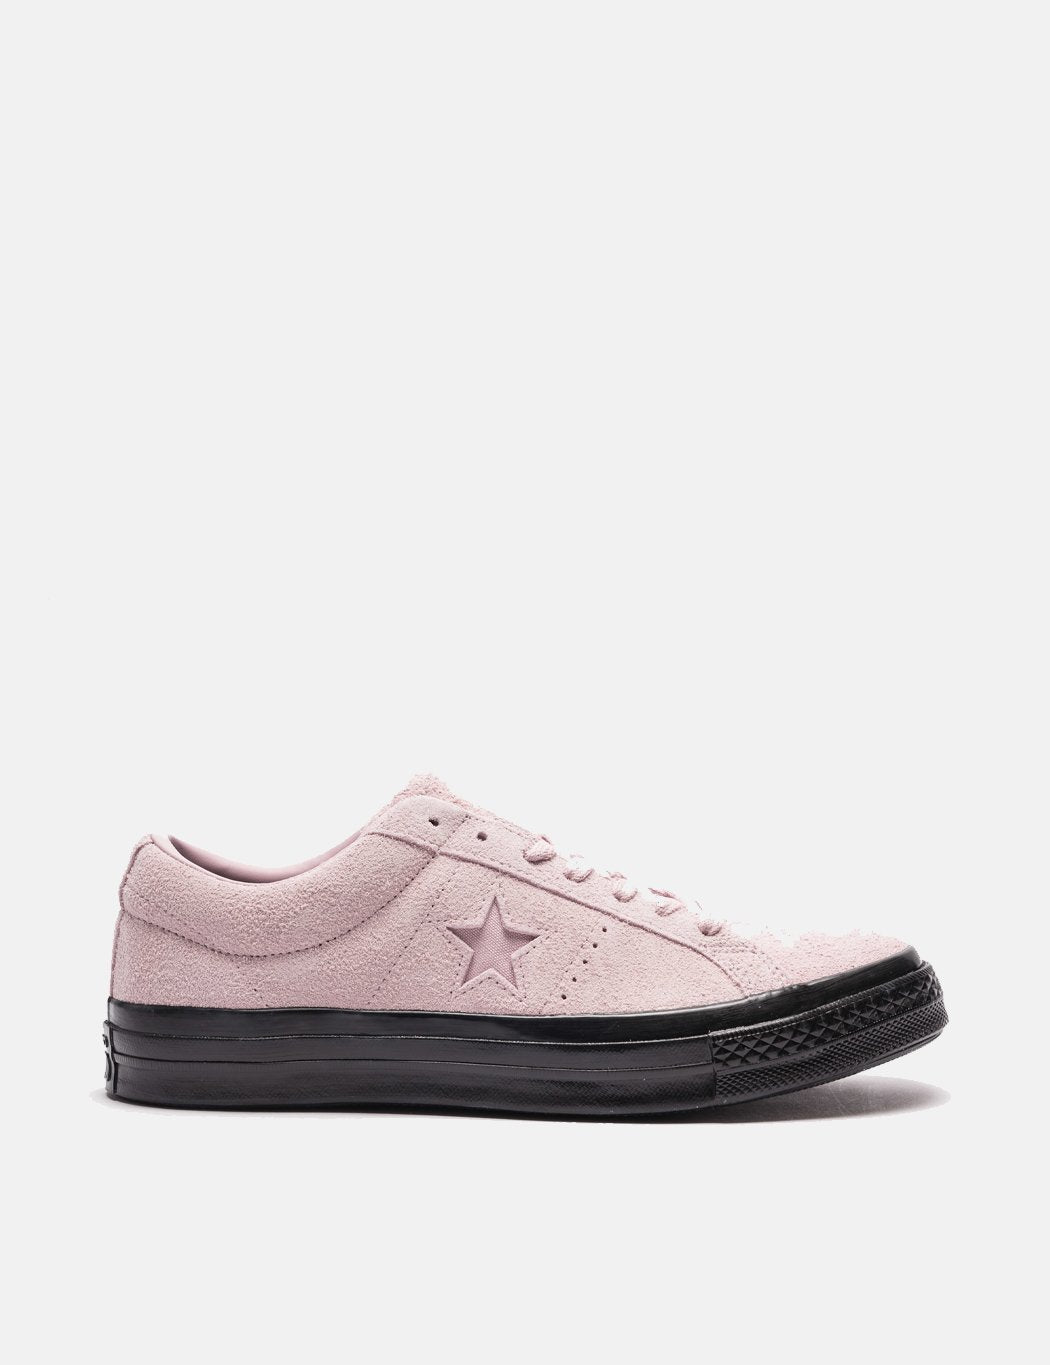 Converse One Star Ox Low Suede (163374C) - Plum Chalk / Schwarz